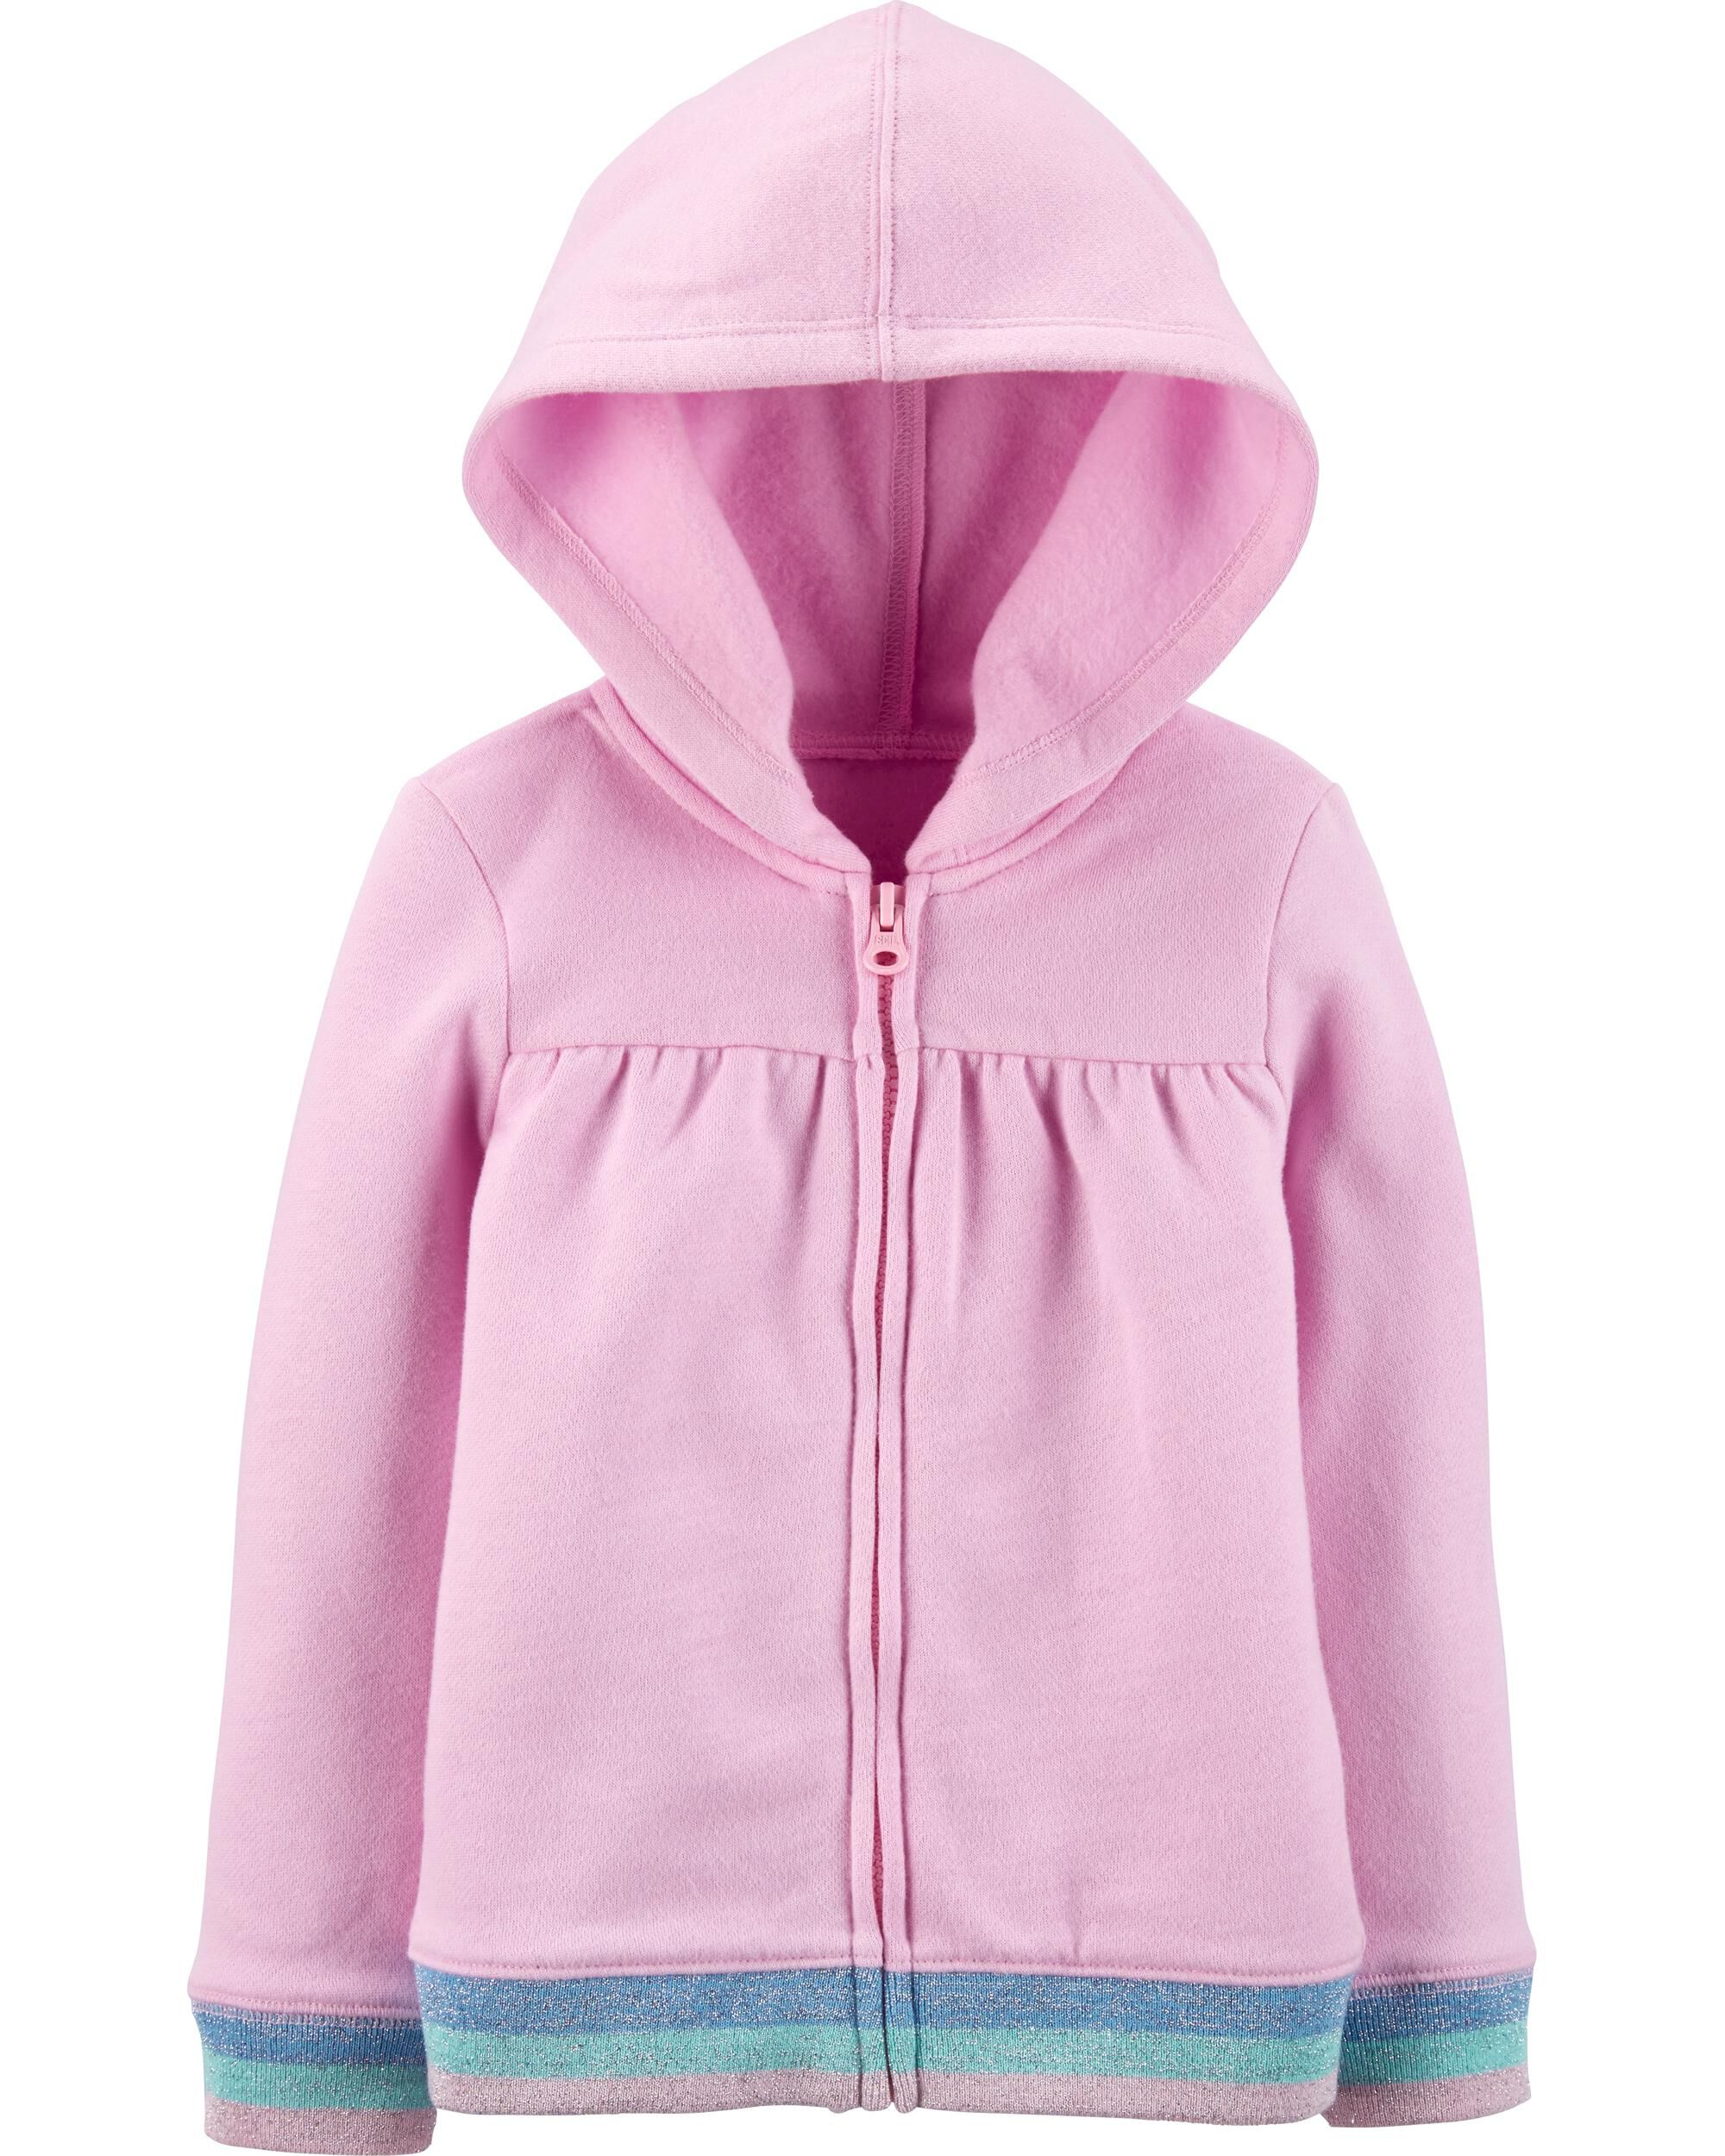 Carters Toddler Girl Zip-Up Glitter Unicorn Fleece Hoodie Jacket Outerwear 5T